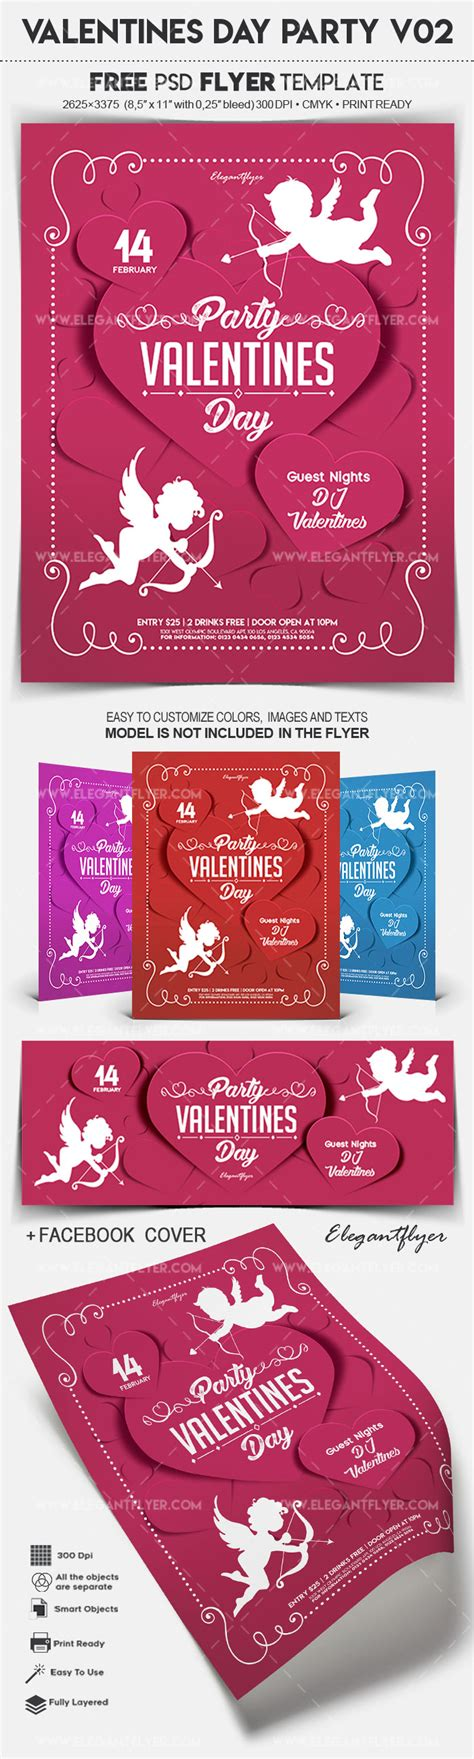 Valentines Day Party V02 Free Flyer Psd Template By Elegantflyer Day Flyer Template Free